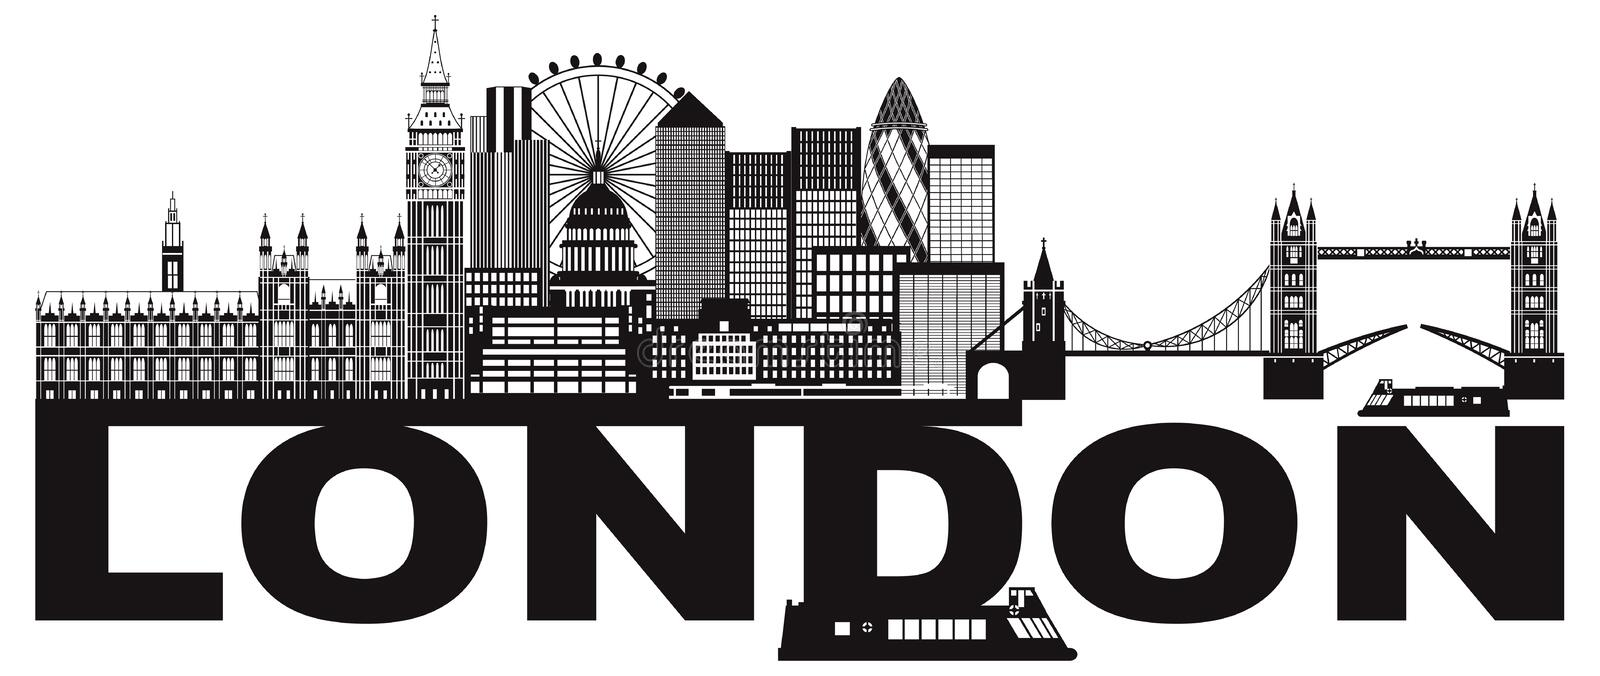 London Skyline Black and White Text vector Illustration stock illustration